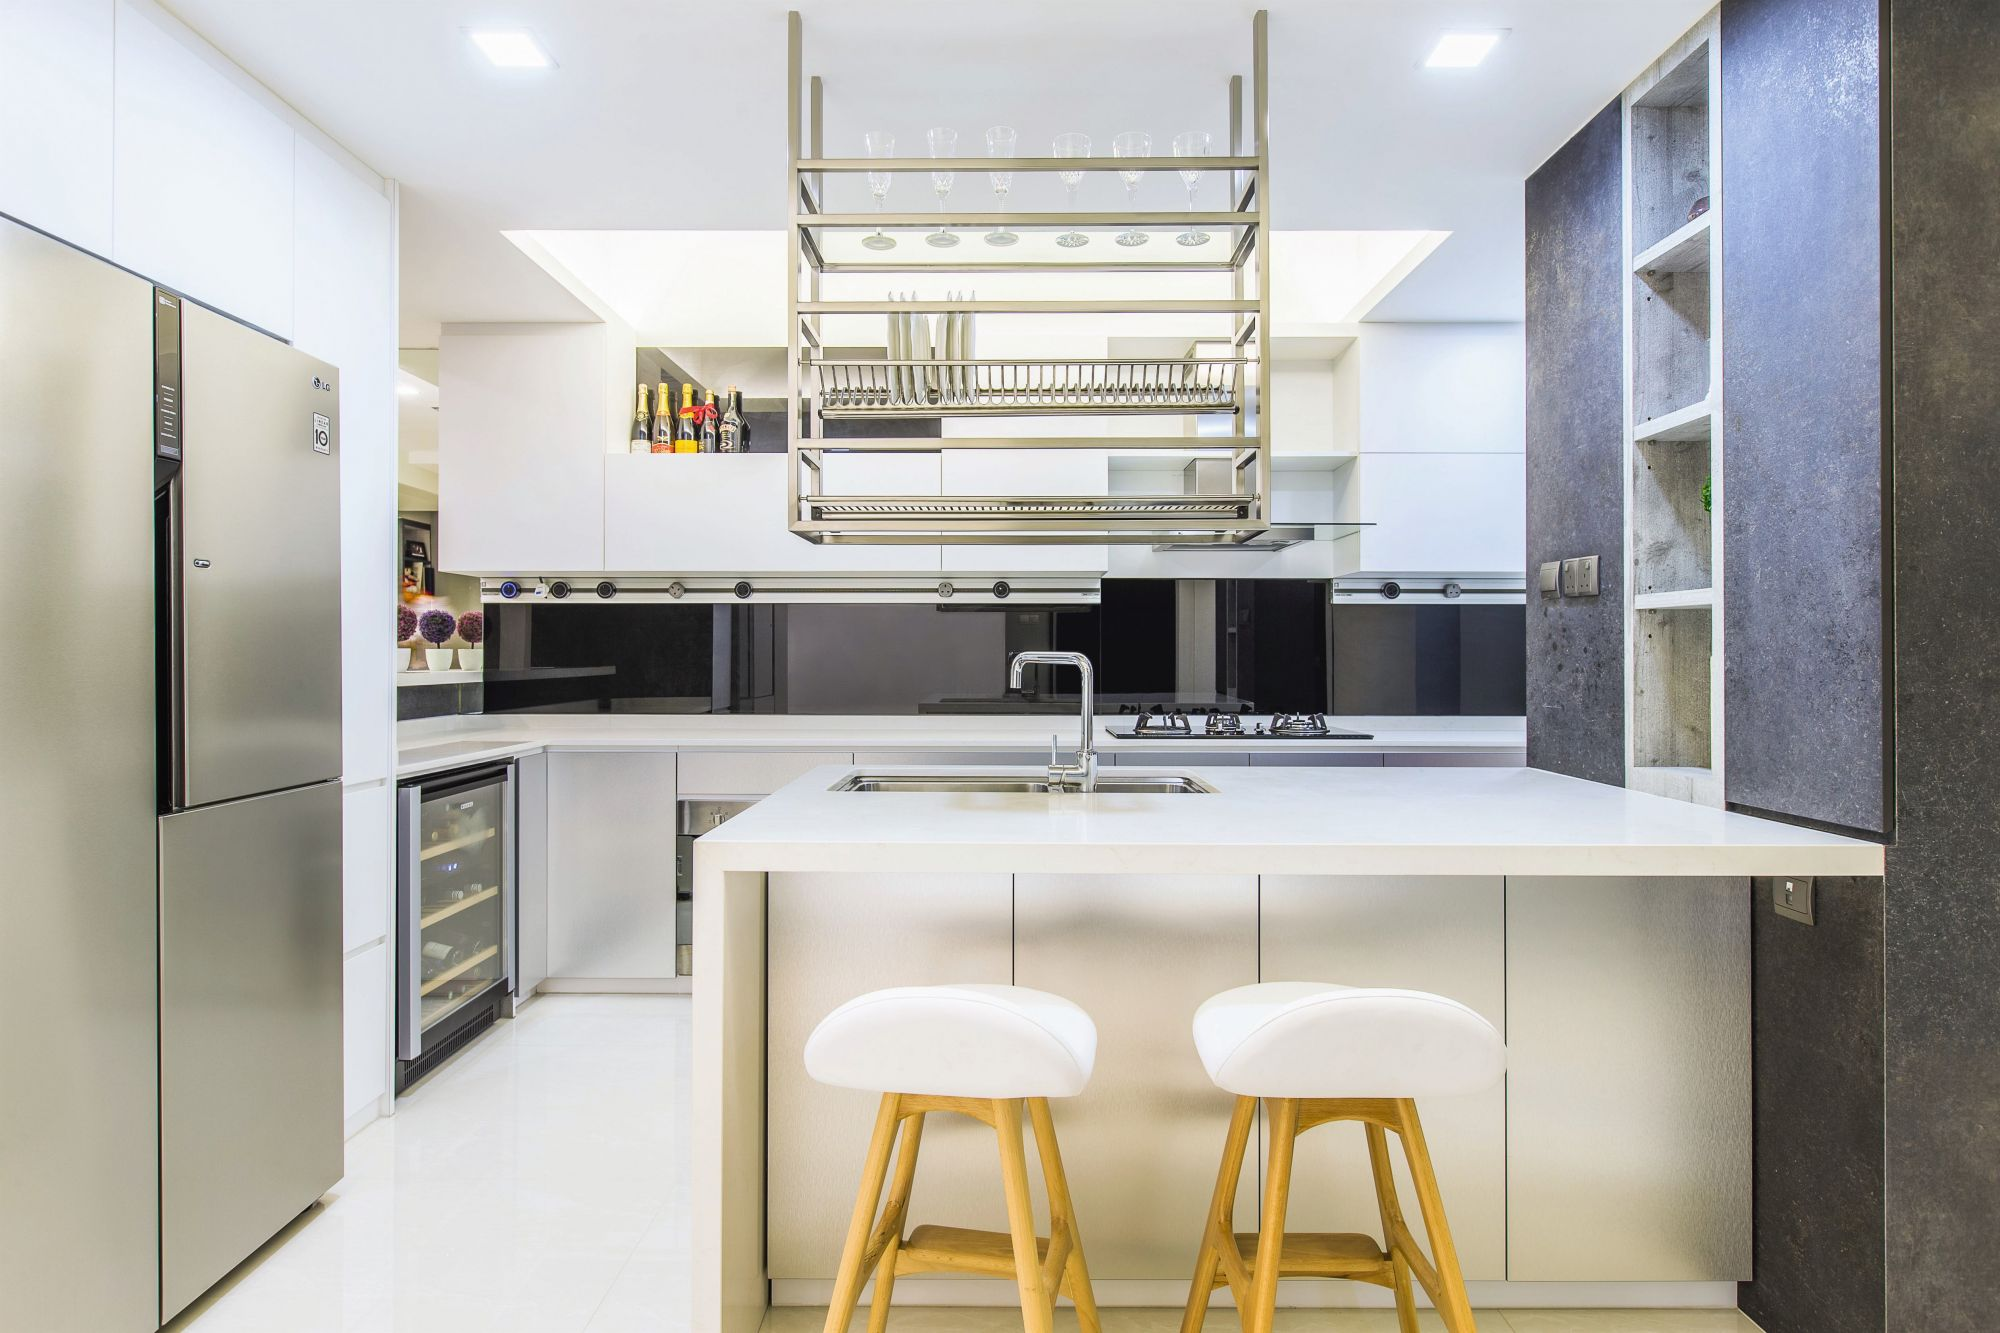 A project by Summerhaus D'zign, this minimalist kitchen features features a variety of open shelves